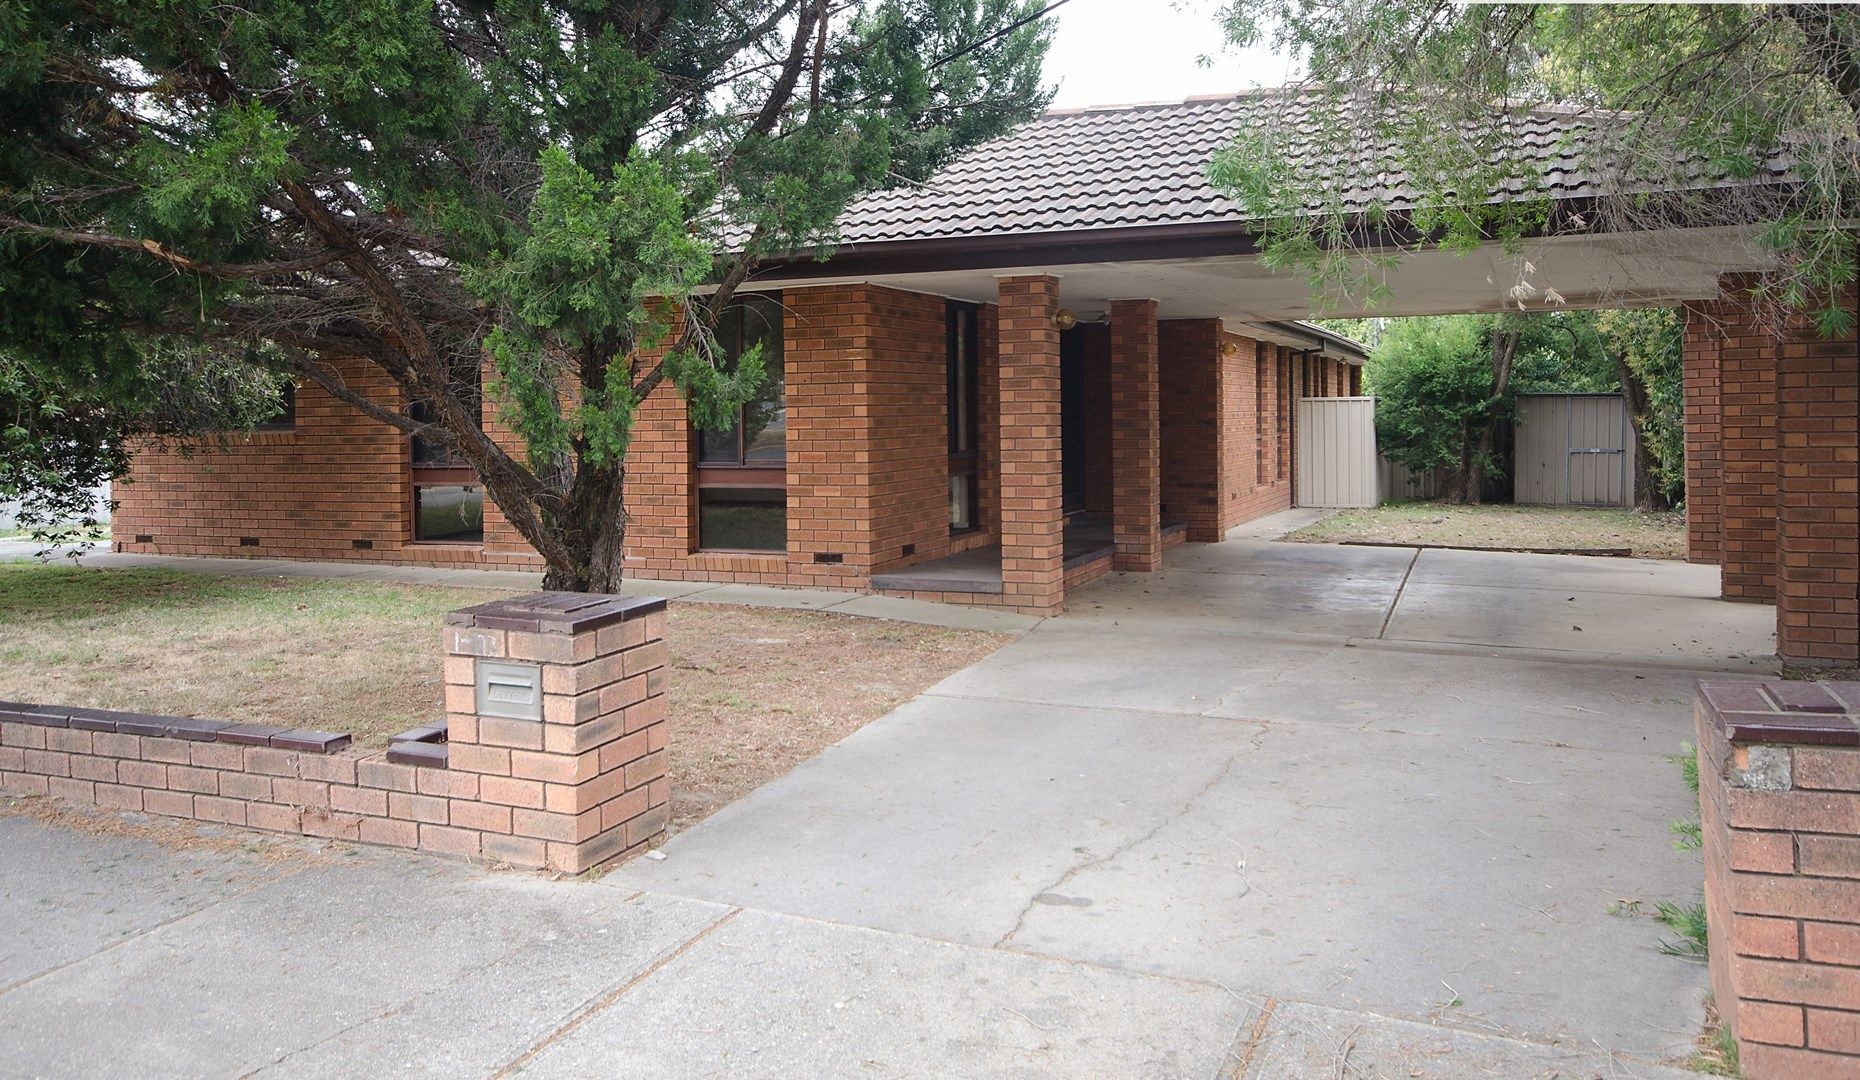 3 bedrooms Townhouse in 1/73 Emerald Avenue WEST WODONGA VIC, 3690